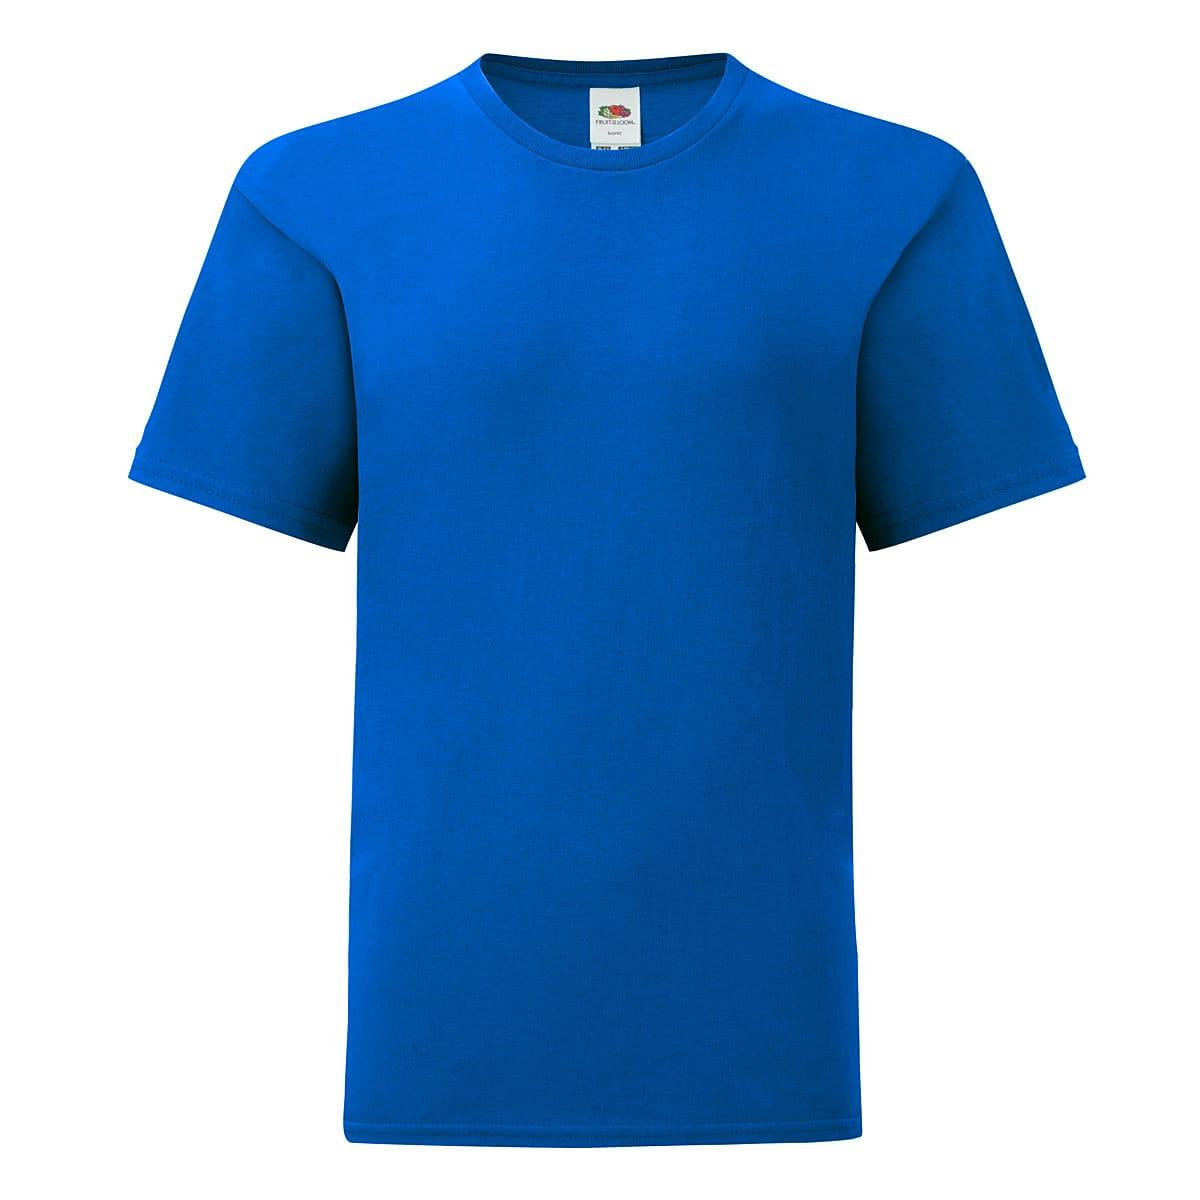 Fruit Of The Loom Kids Iconic T-Shirt in Royal Blue (Product Code: 61023)